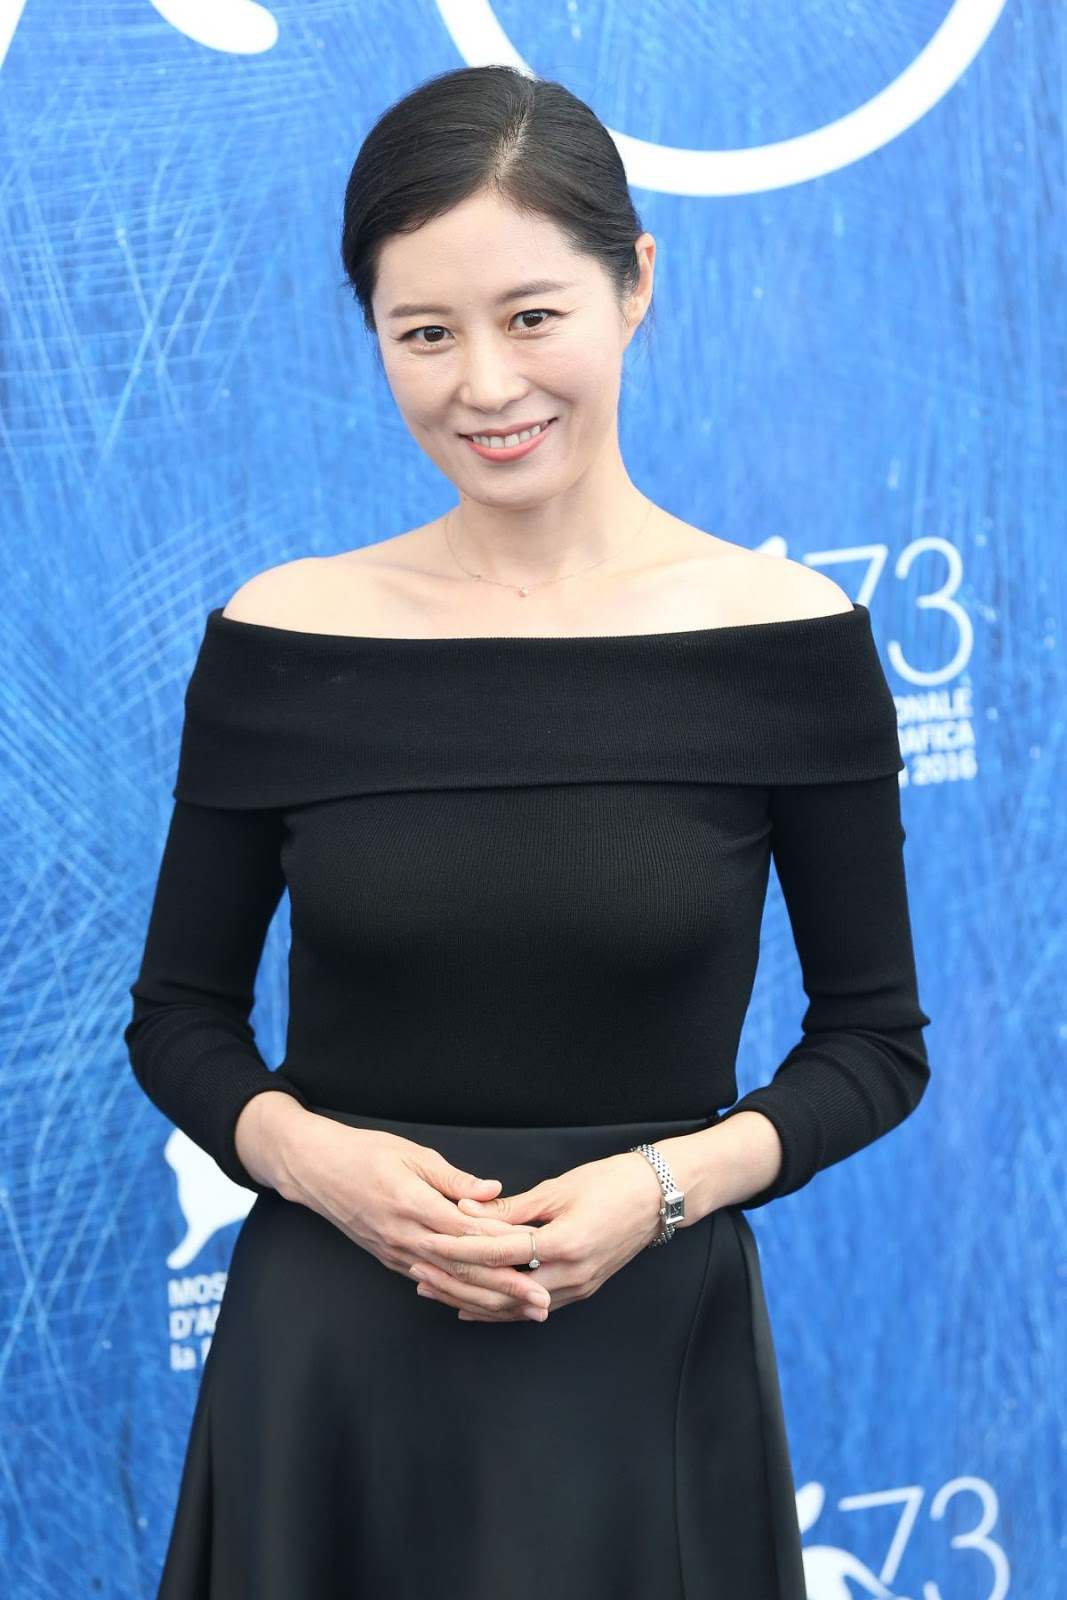 HQ Photos of South Korean actress Moon So-ri at 2016 73rd Venice Film Festival Jury Photocall in Venice